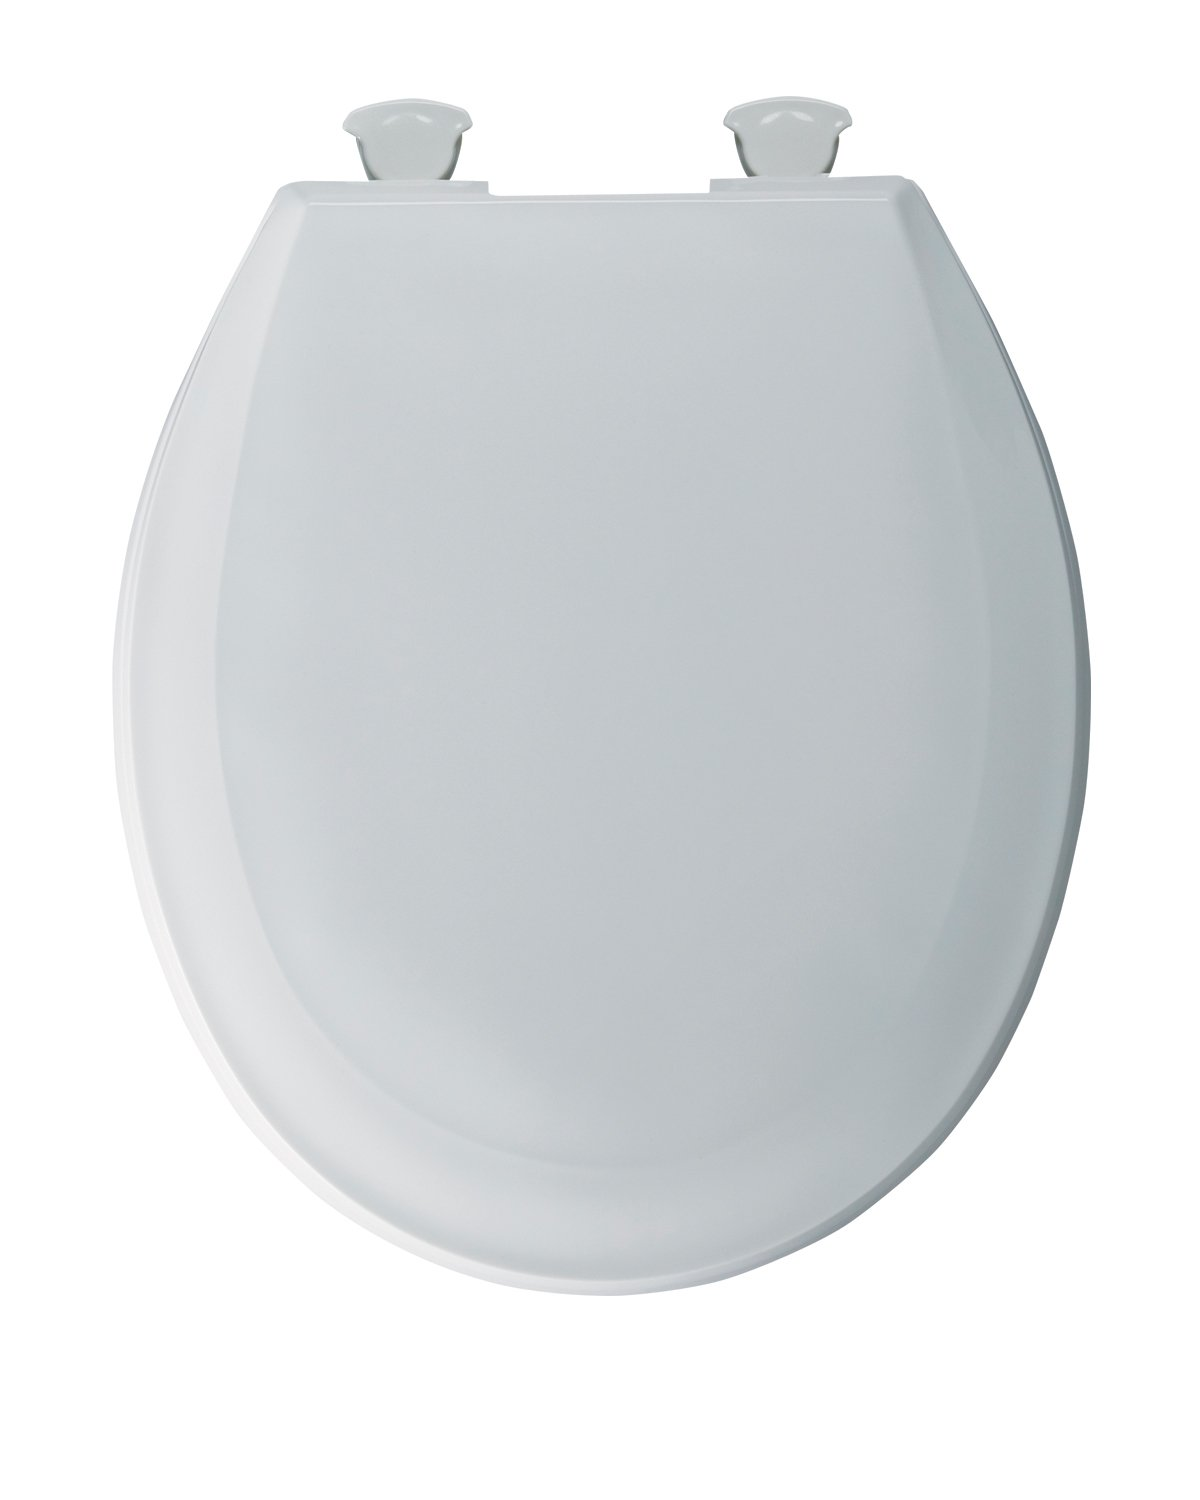 Bemis 100EC000 Plastic Round Toilet Seat with Easy Clean and Change Hinges, White